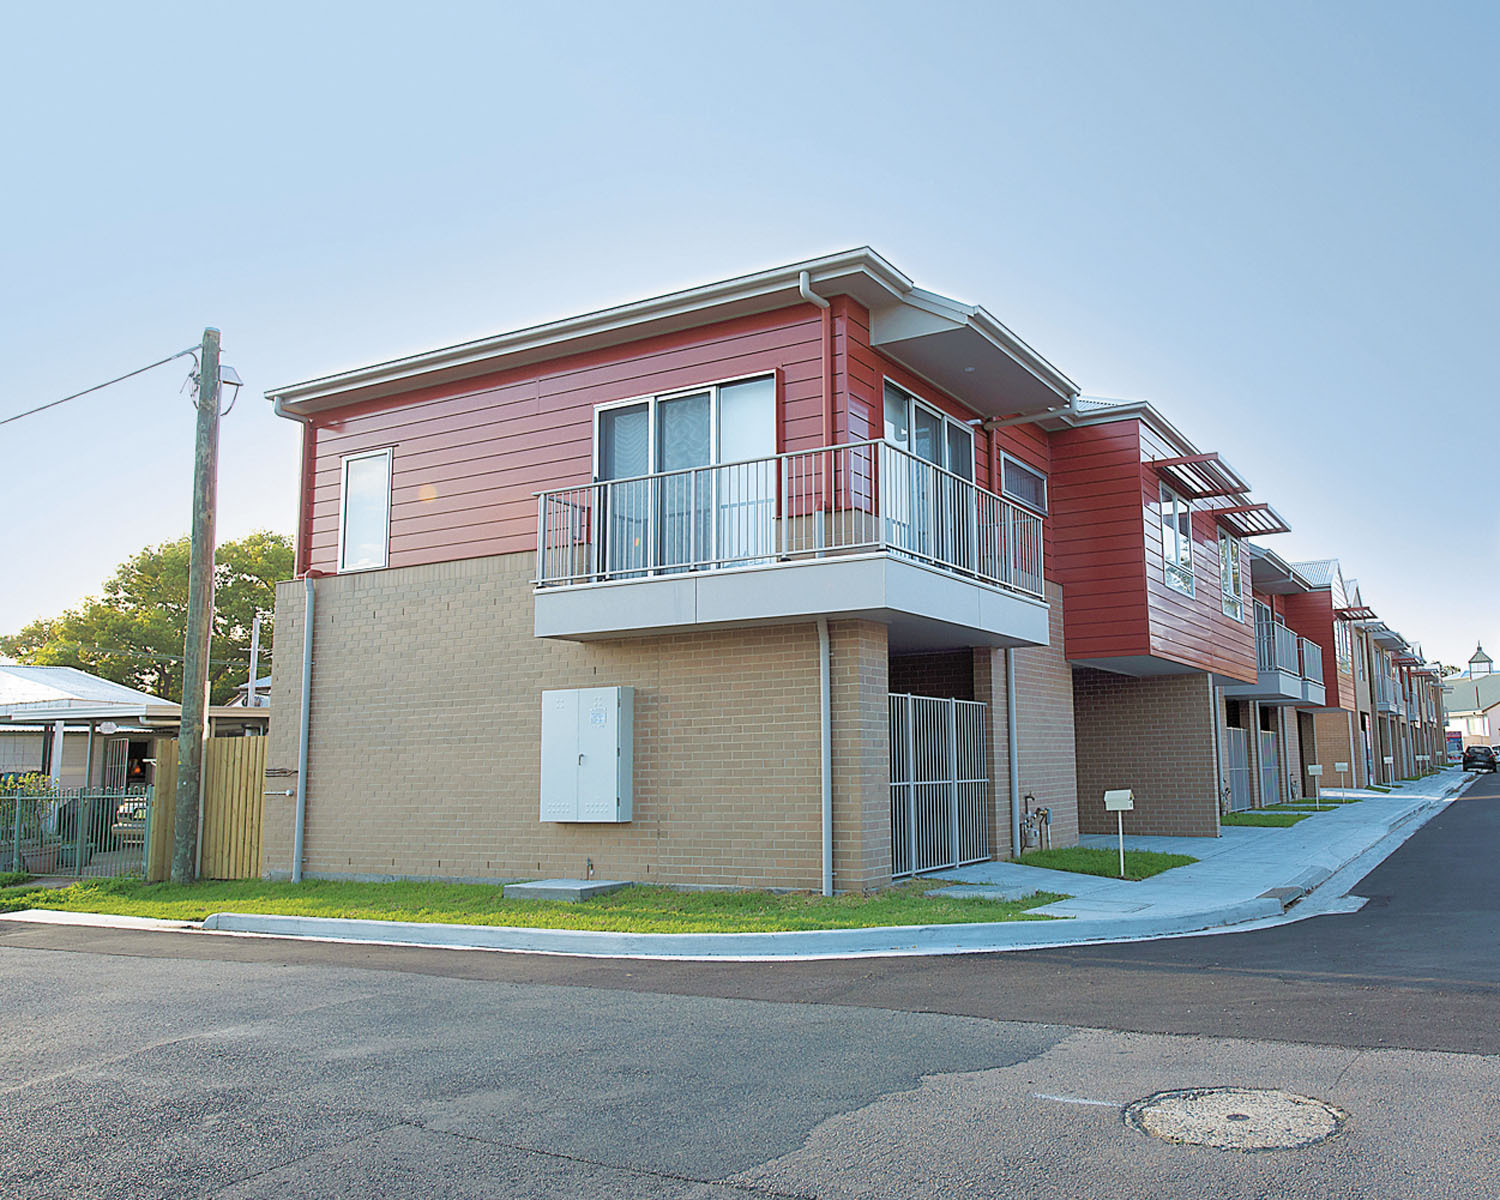 New units in Maitland ready for tenants